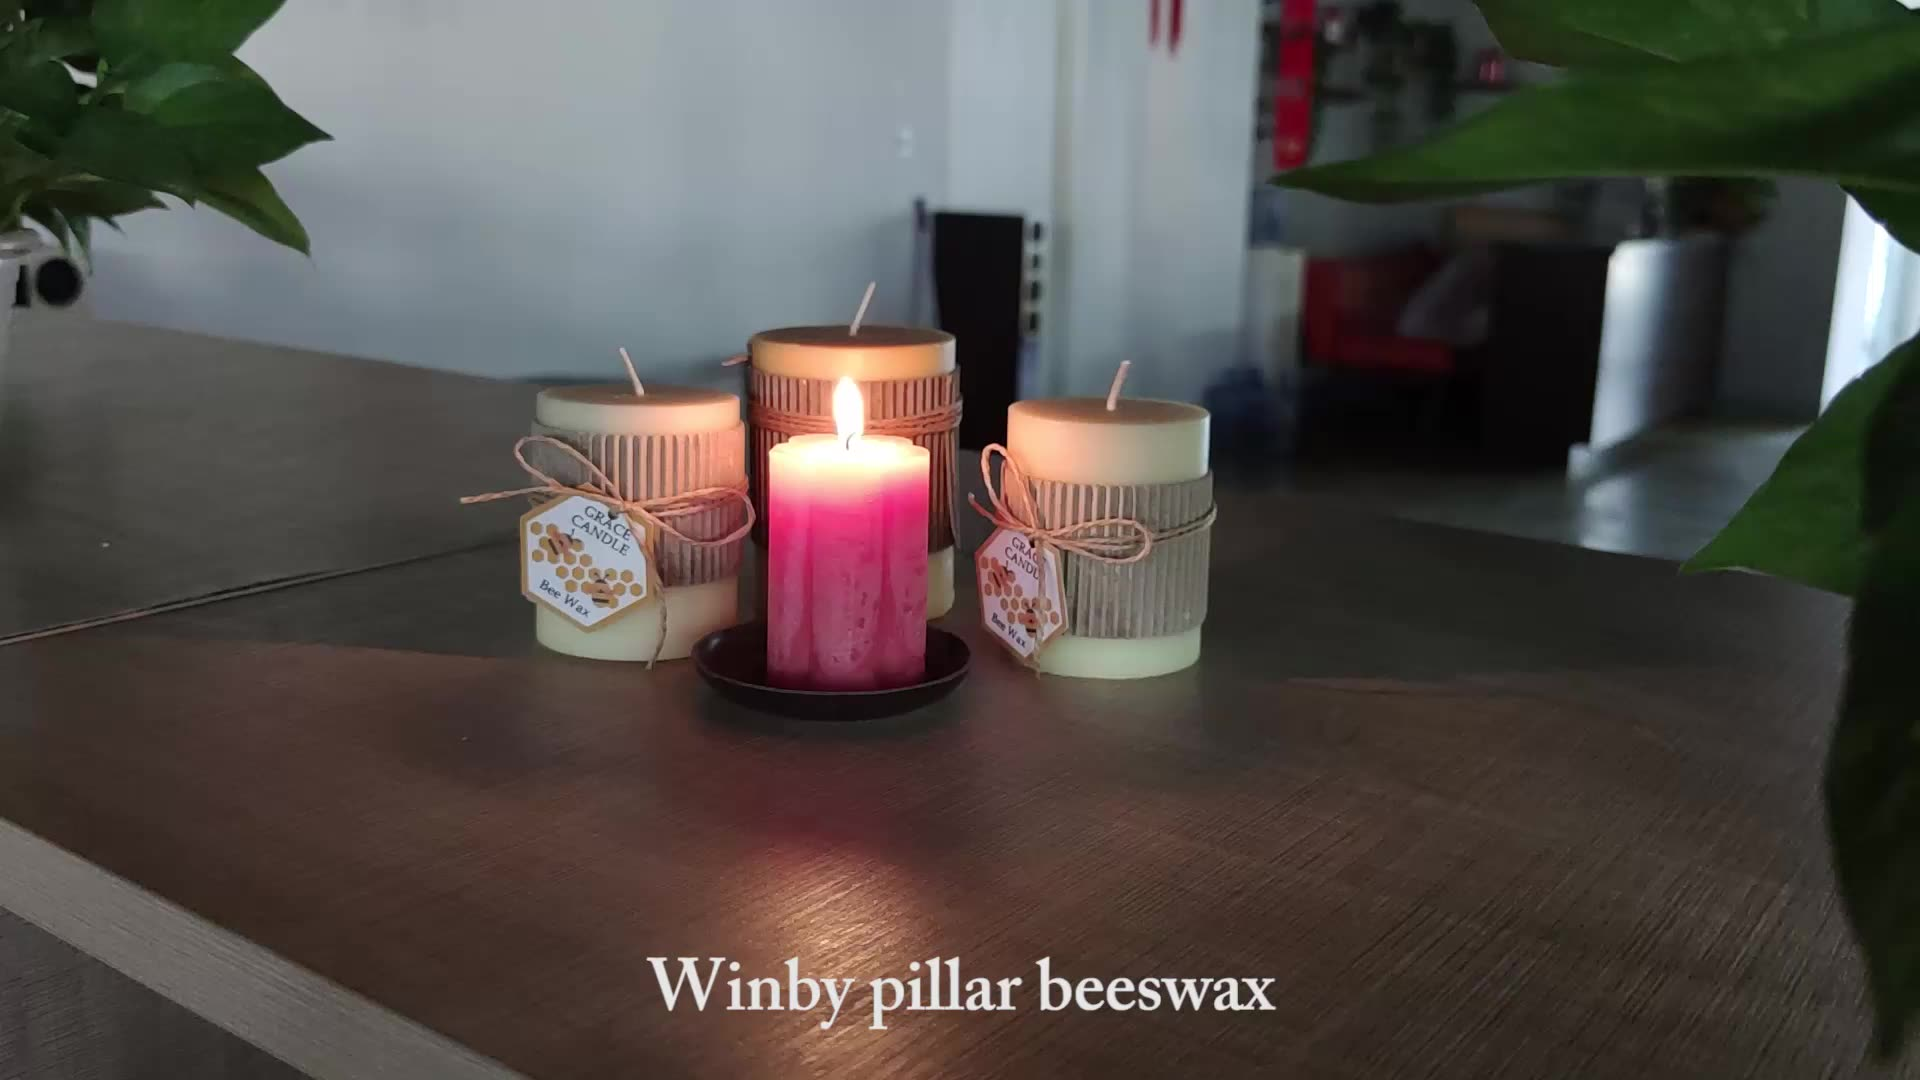 Private label aromatherapy bee wax candle